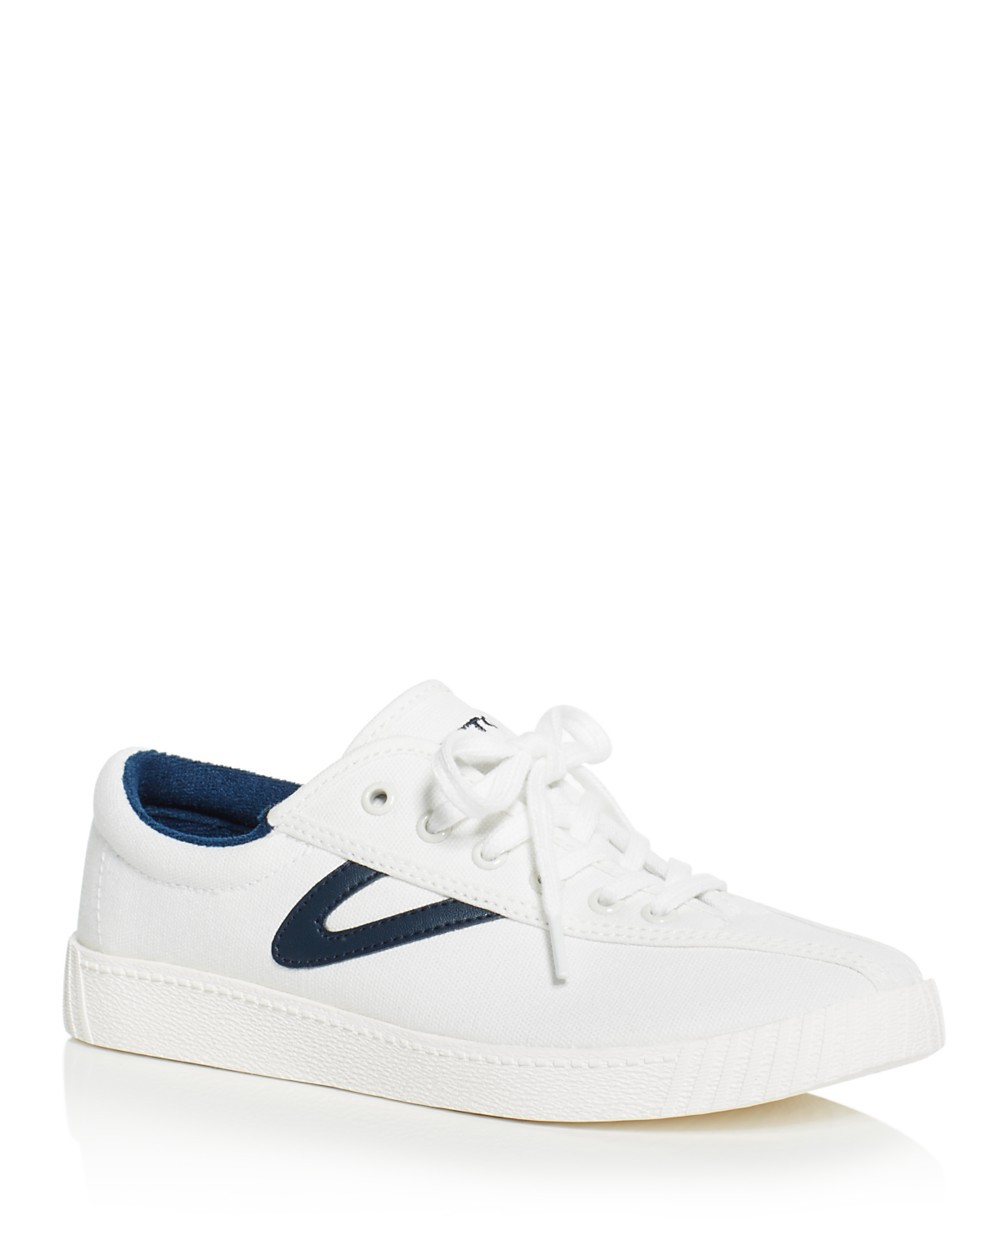 WOMEN'S NYLITE PLUS VELVET CASUAL SNEAKERS FROM FINISH LINE